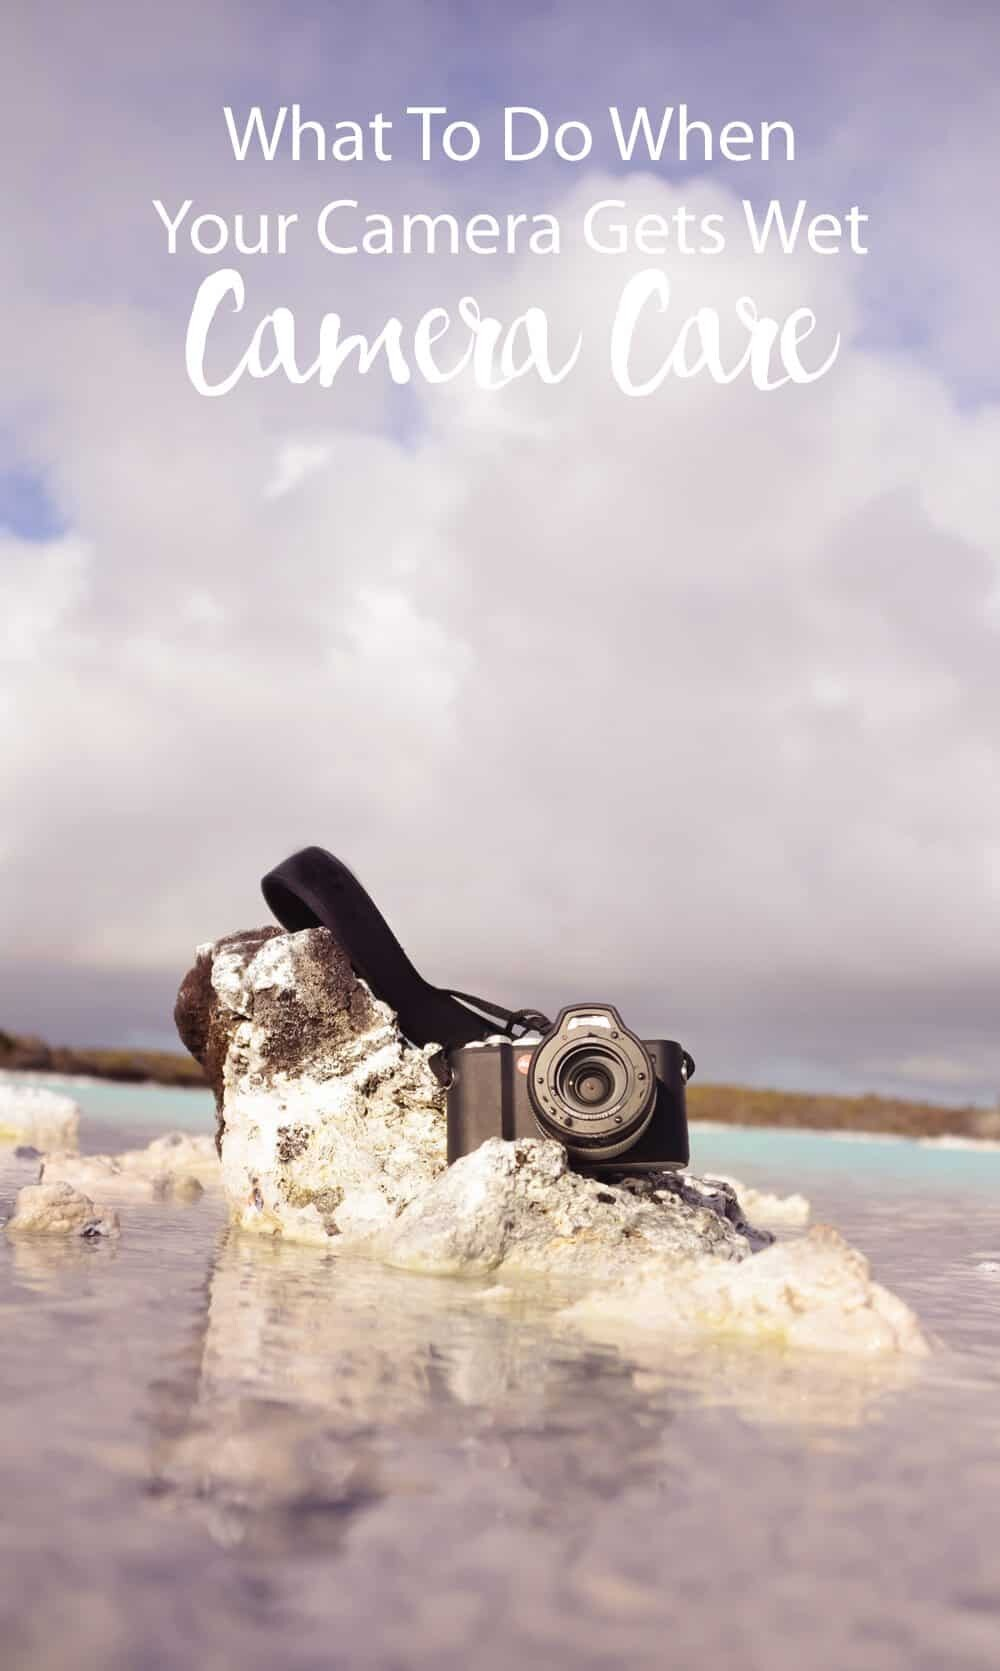 What to do when your camera gets wet - a step by step guide by The Wandering Lens